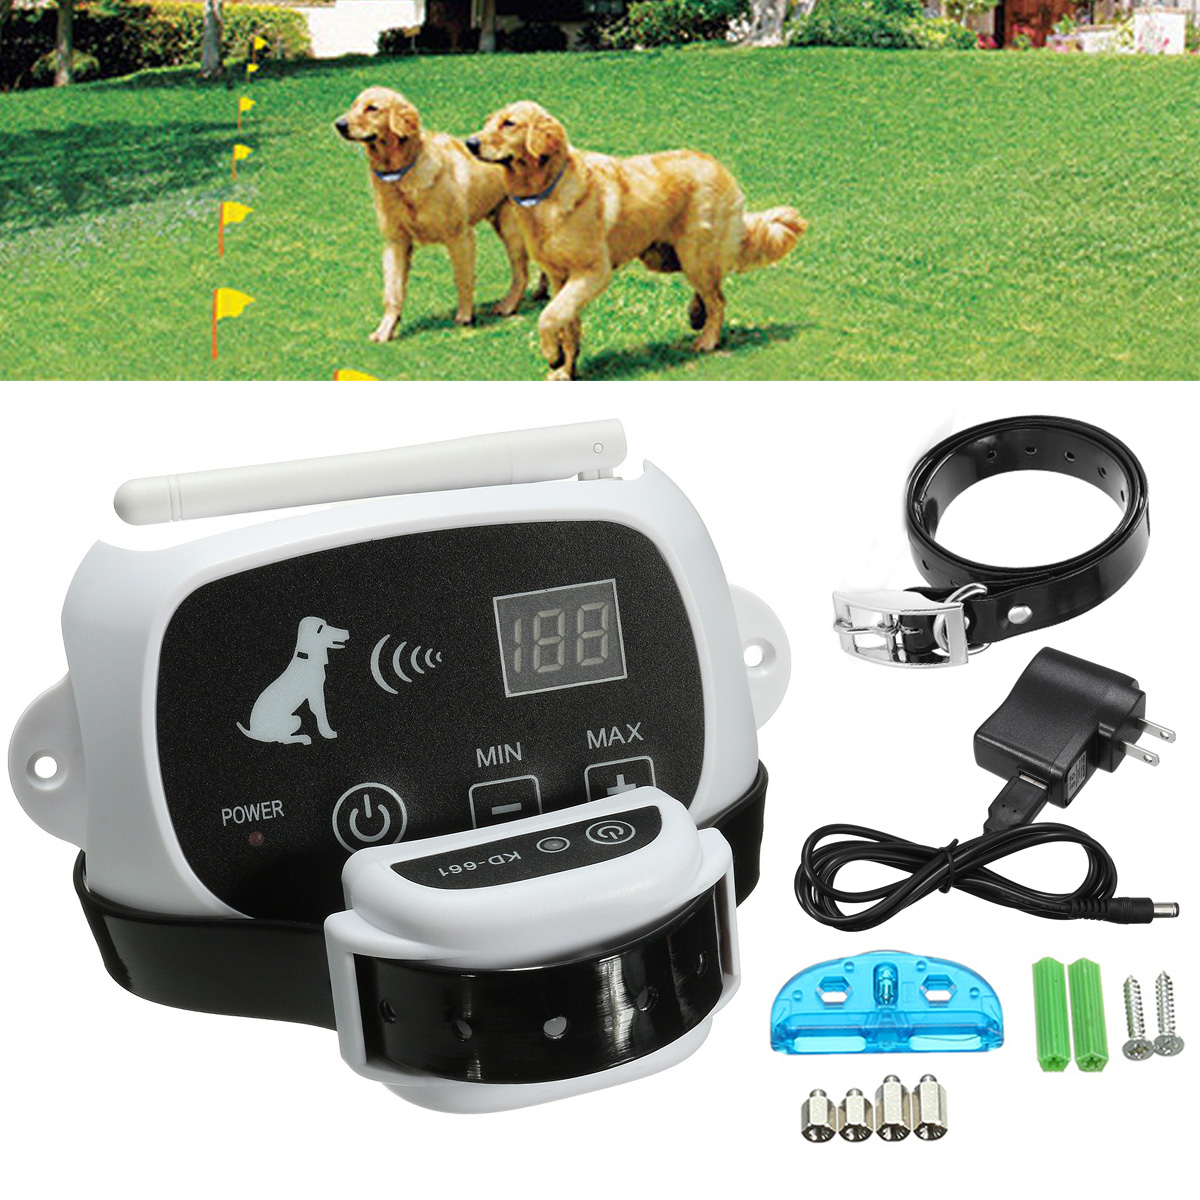 wireless remote pet 12 dog fence nowire training containment system collar